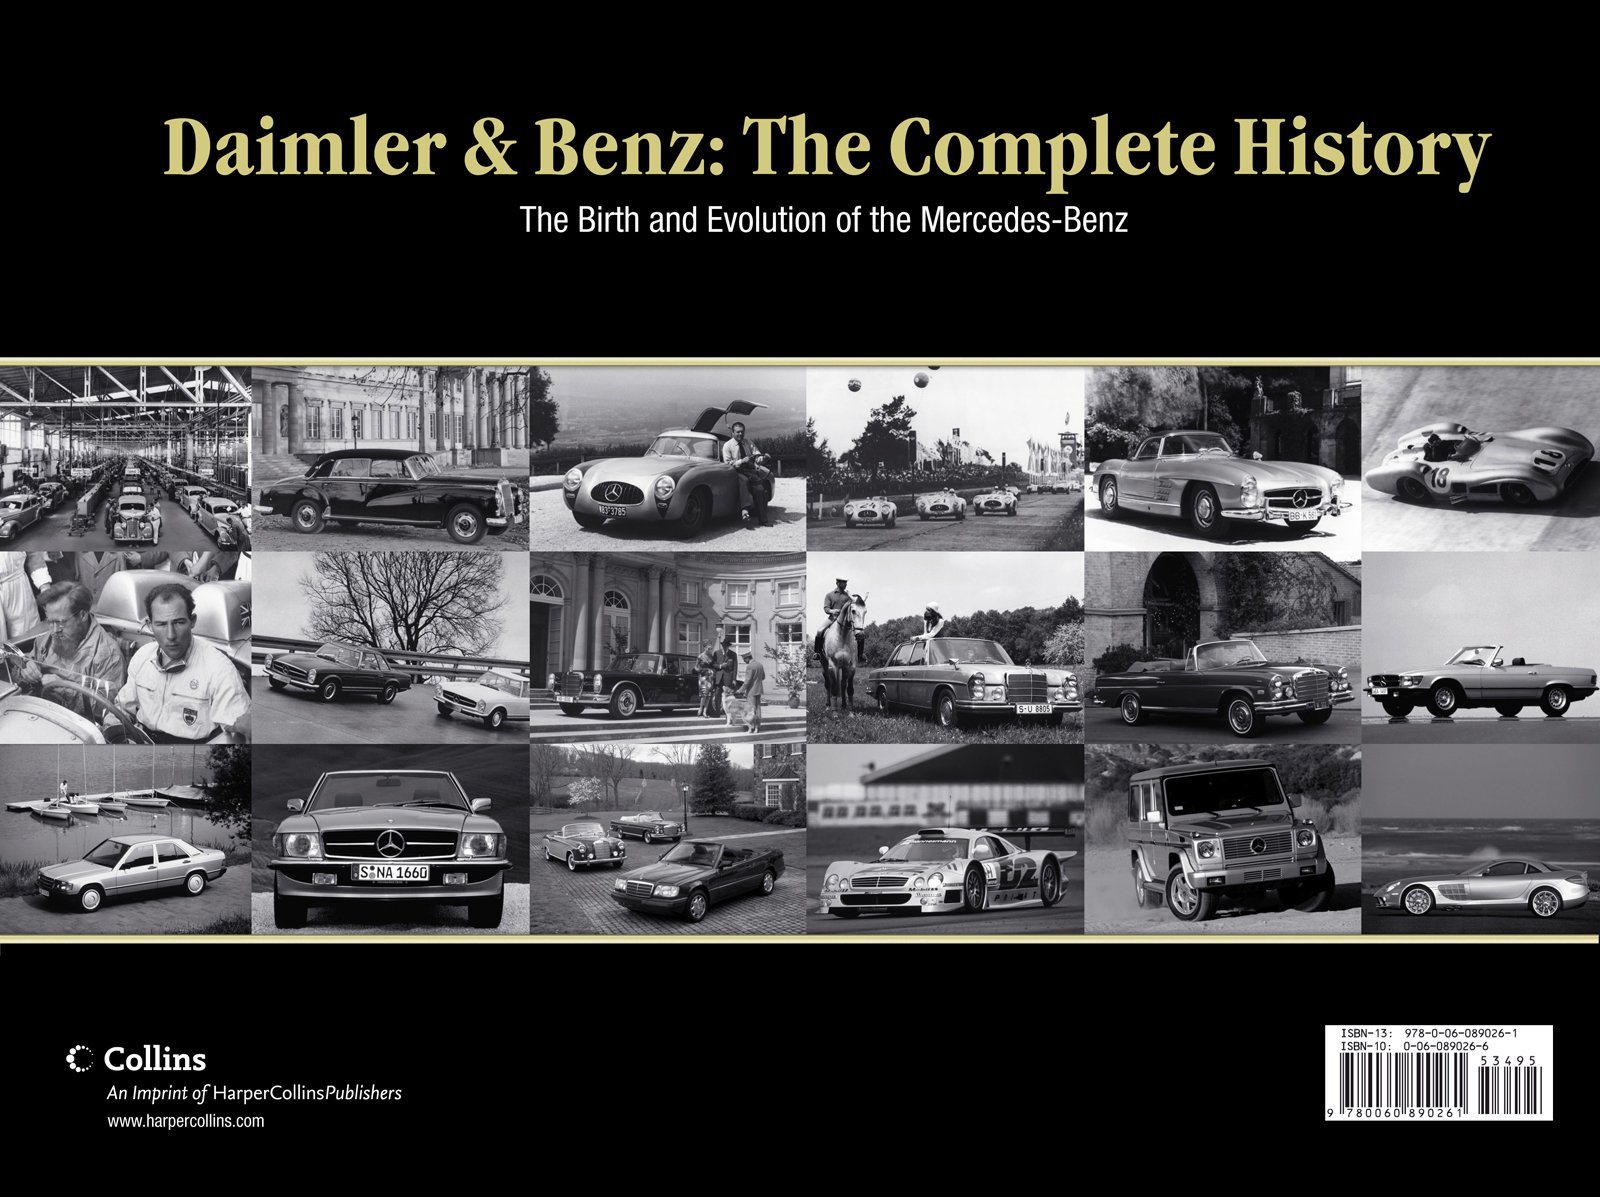 Attractive Daimler U0026 Benz: The Complete History: The Birth And Evolution Of The  Mercedes Benz: Dennis Adler: 9780060890261: Amazon.com: Books